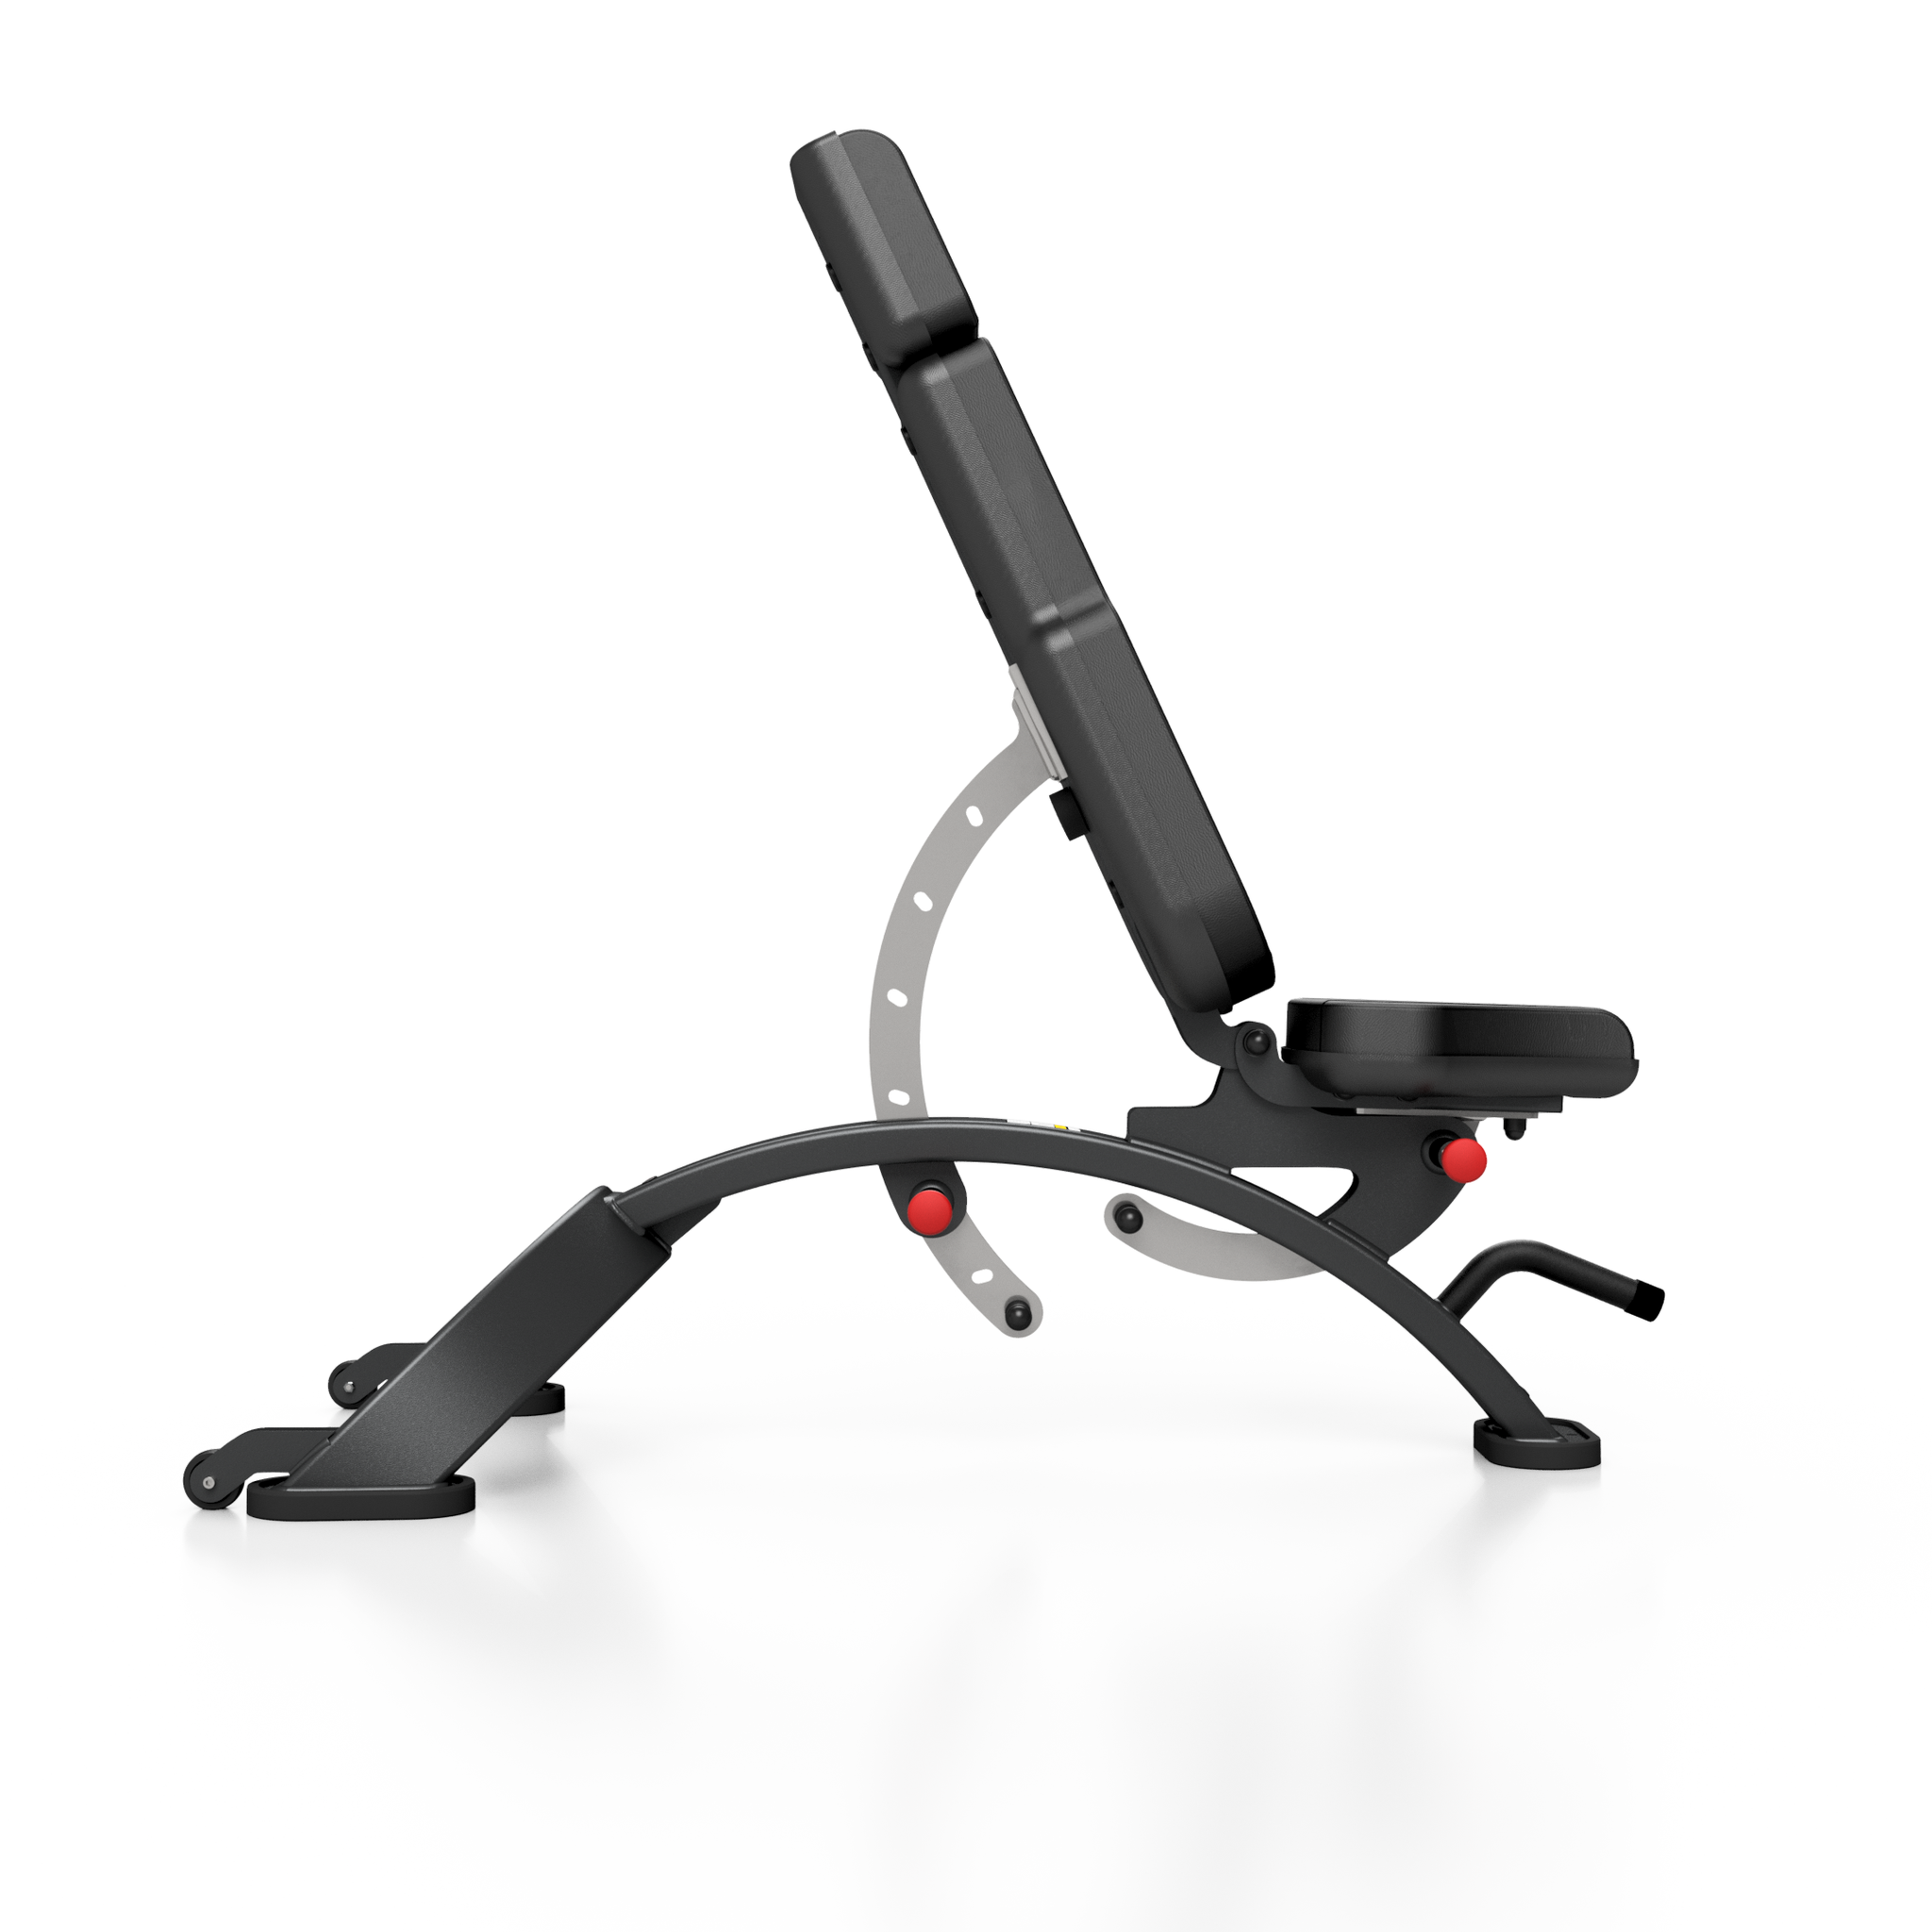 azfitnessequipmentcom machine products fitness made from authority sport equipment by loaded weight plate and chest bench decline marbo press shop sports free machines gym